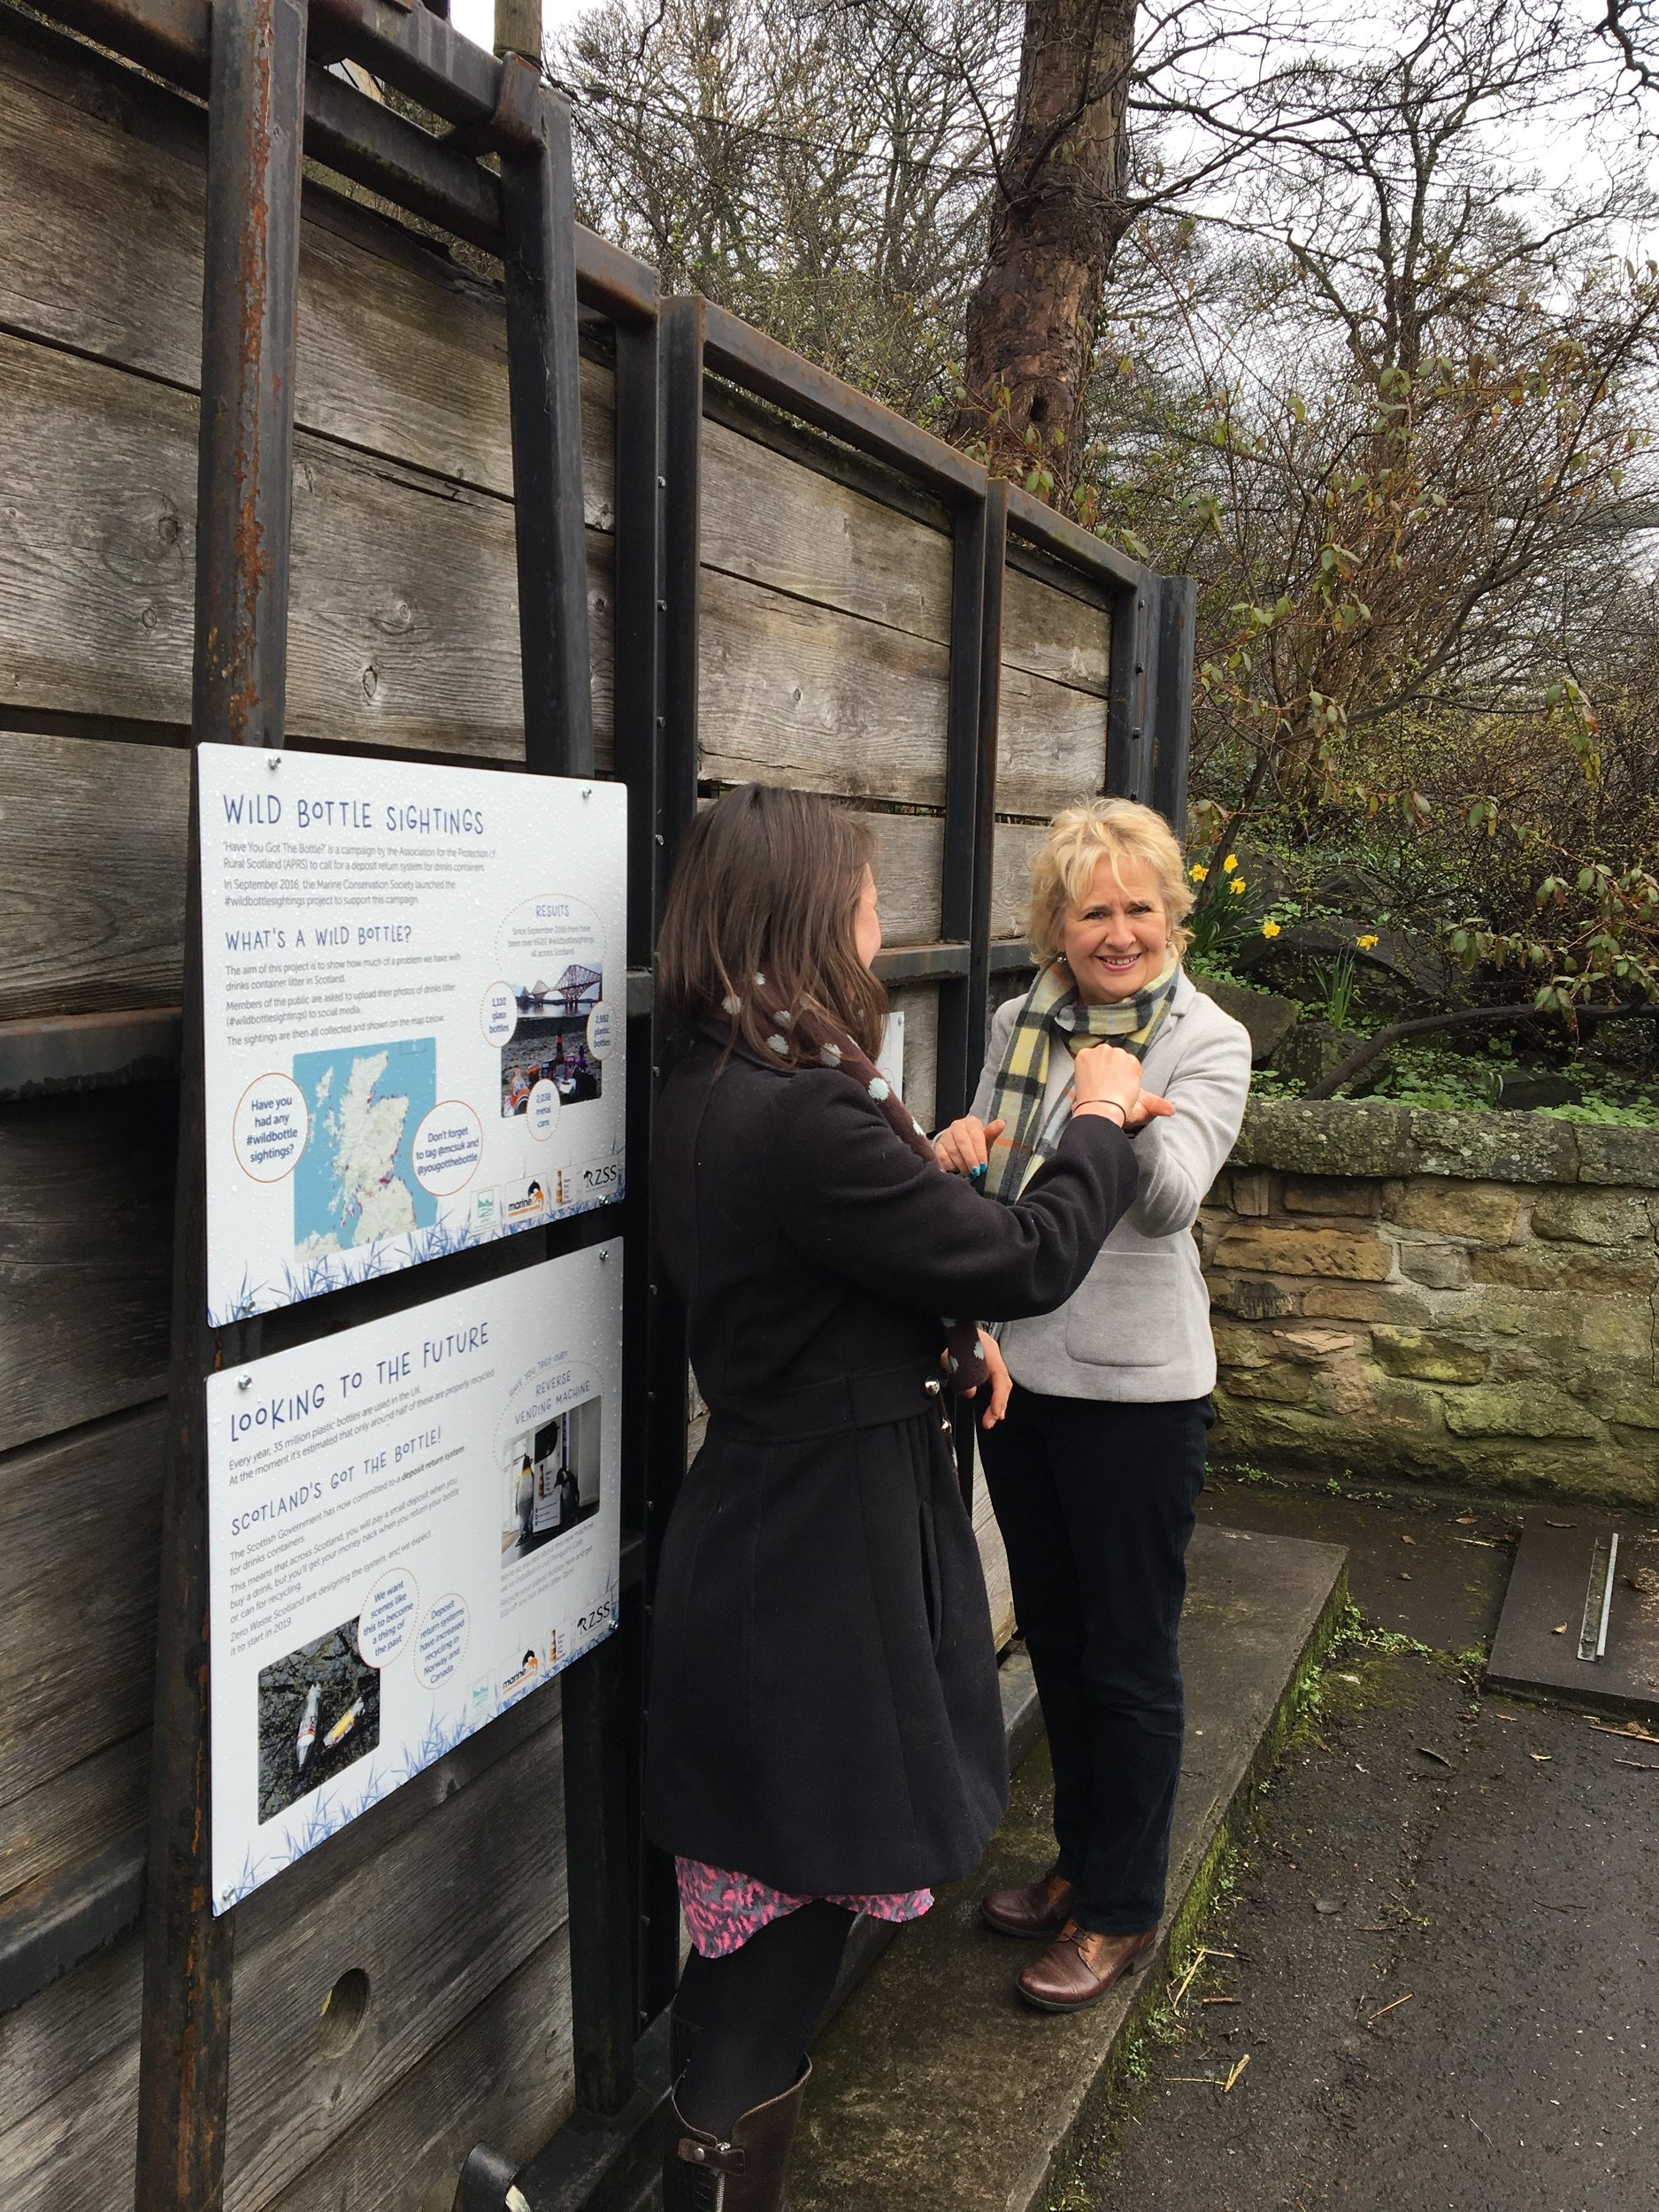 Cabinet Secretary for the Environment, Climate Change and Land Reform Roseanna Cunningham MSP came to return a plastic bottle as well! Jenni Hume, the Campaign Manager for 'Have You Got the Bottle?' campaign, is handing Roseanna Cunningham her 10p reward.